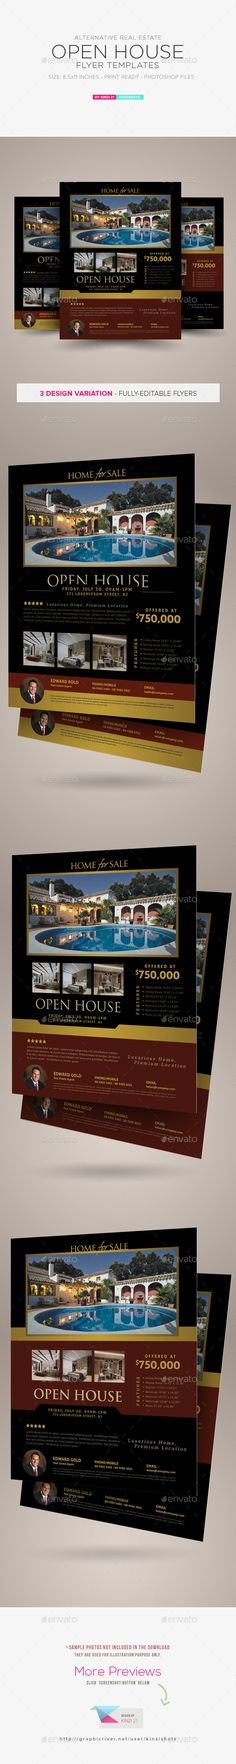 Real Estate Flyer Флаеры, Шаблон флаера и Недвижимость   Open House Flyer  Template  Open House Flyer Template